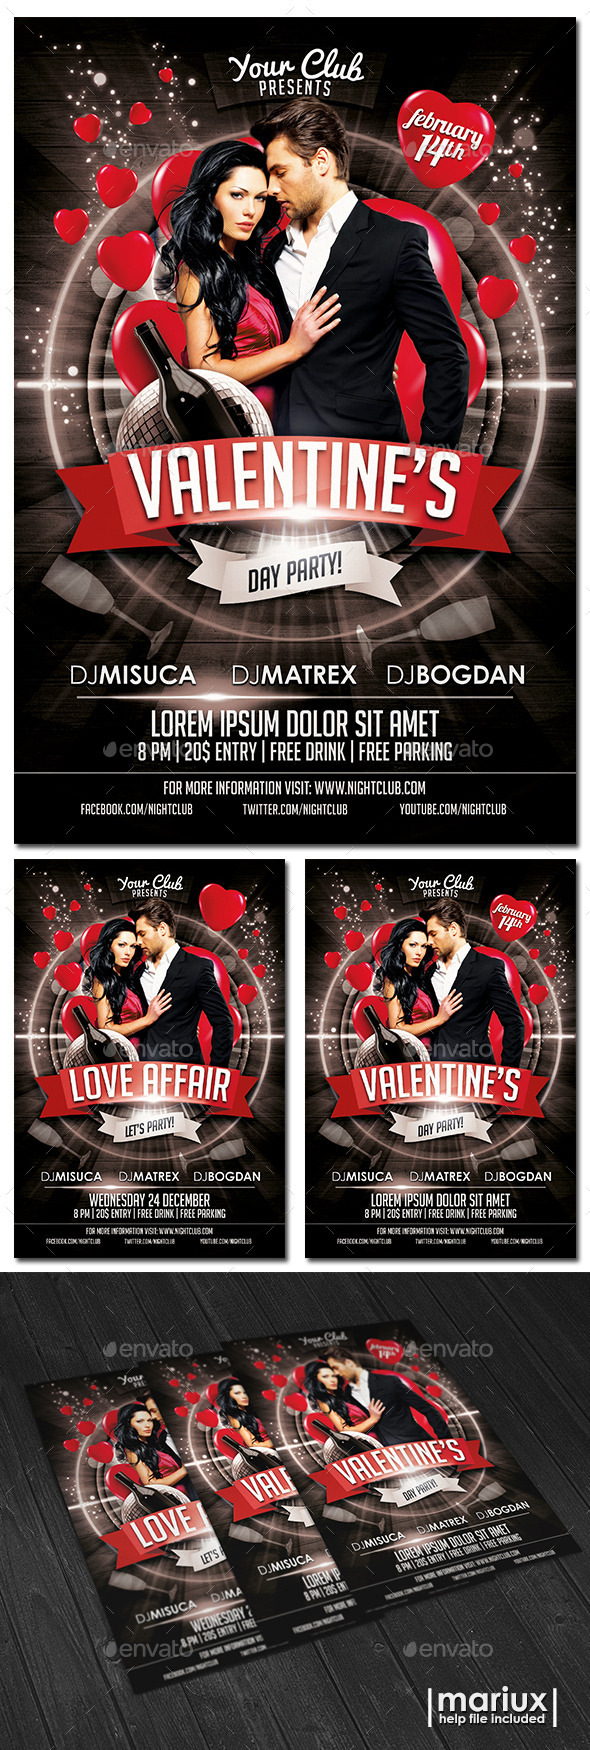 GraphicRiver Valentine s Day Party Flyer 9993054